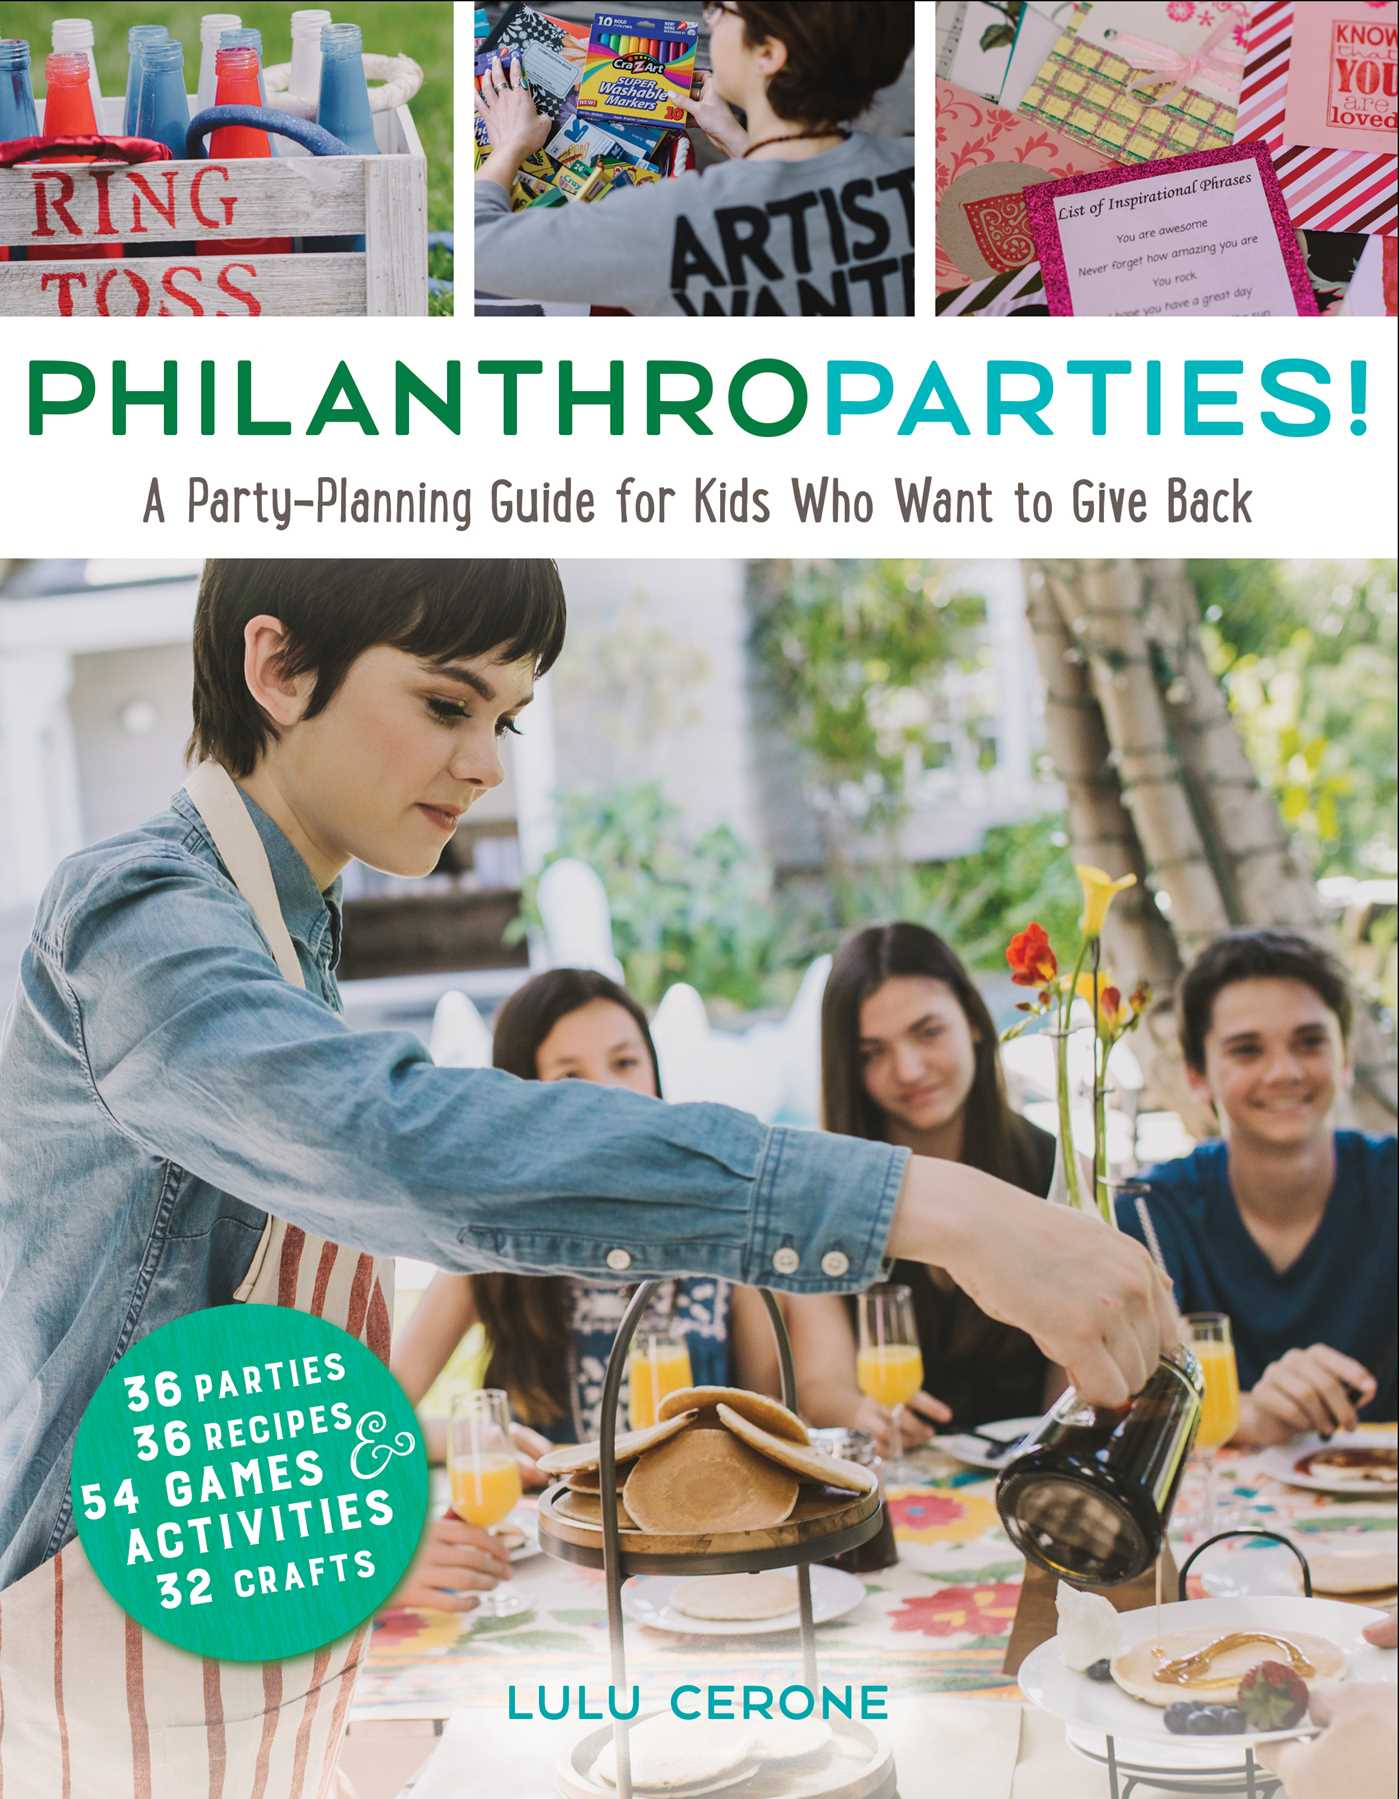 philanthroparties-9781582705873_hr.jpg